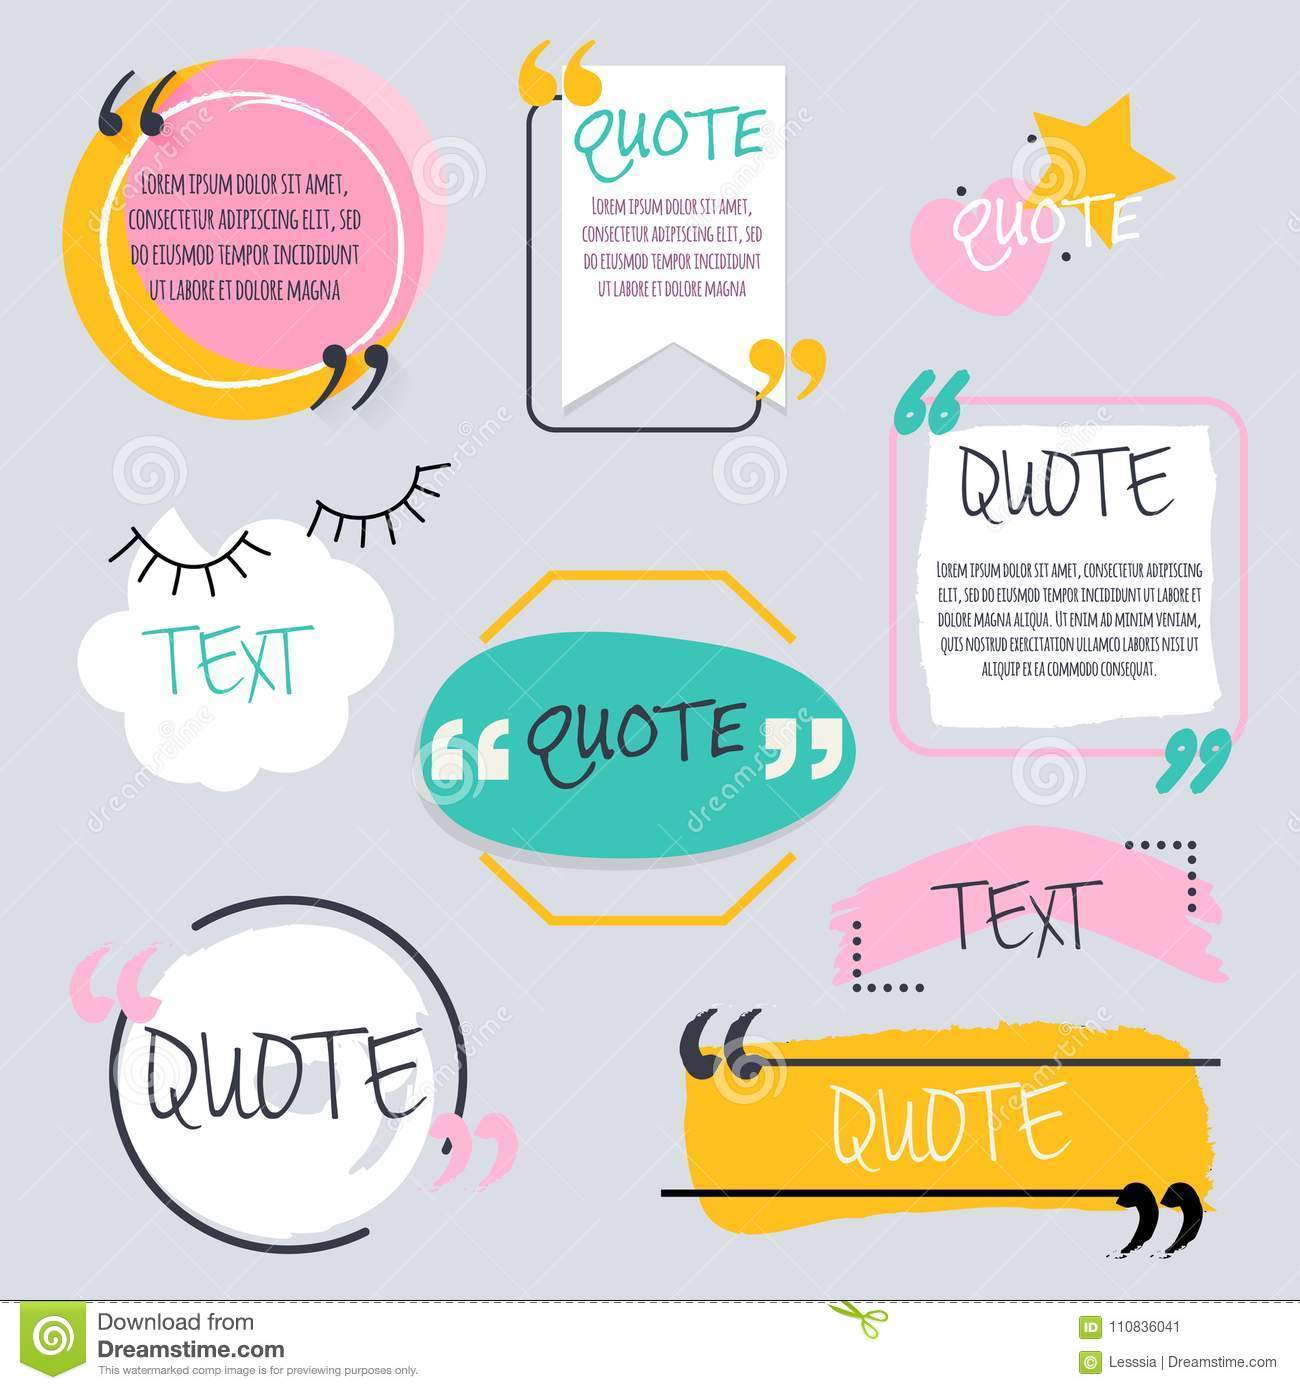 quote blank template design elements circle business